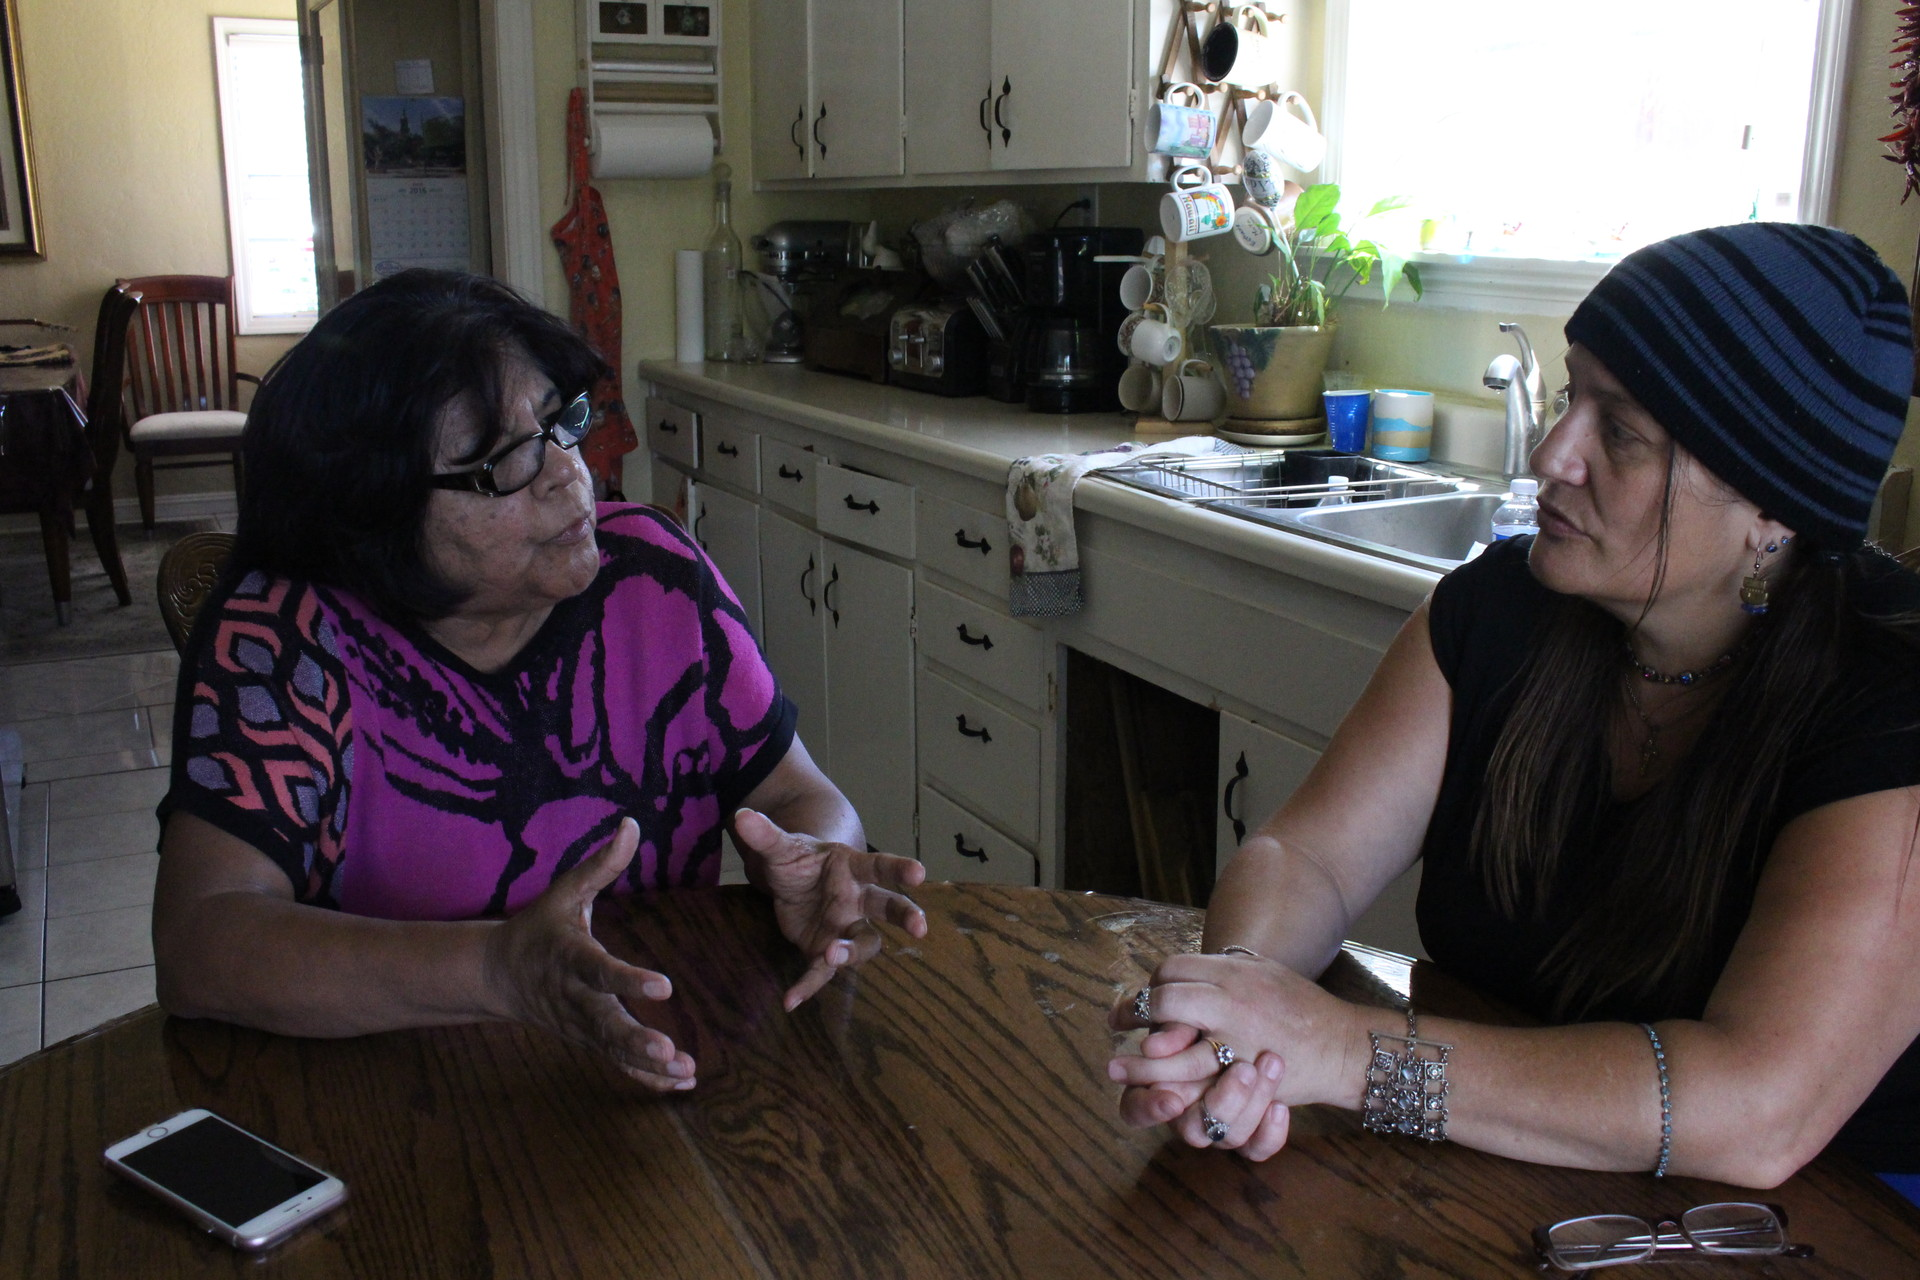 Esther Lemus and Melonie Willis at Lemus' home in the Moorland neighborhood on July 29, 2016. Willis and Lemus pushed for more street lights and invited the Sheriff's Department to paint a community mural.